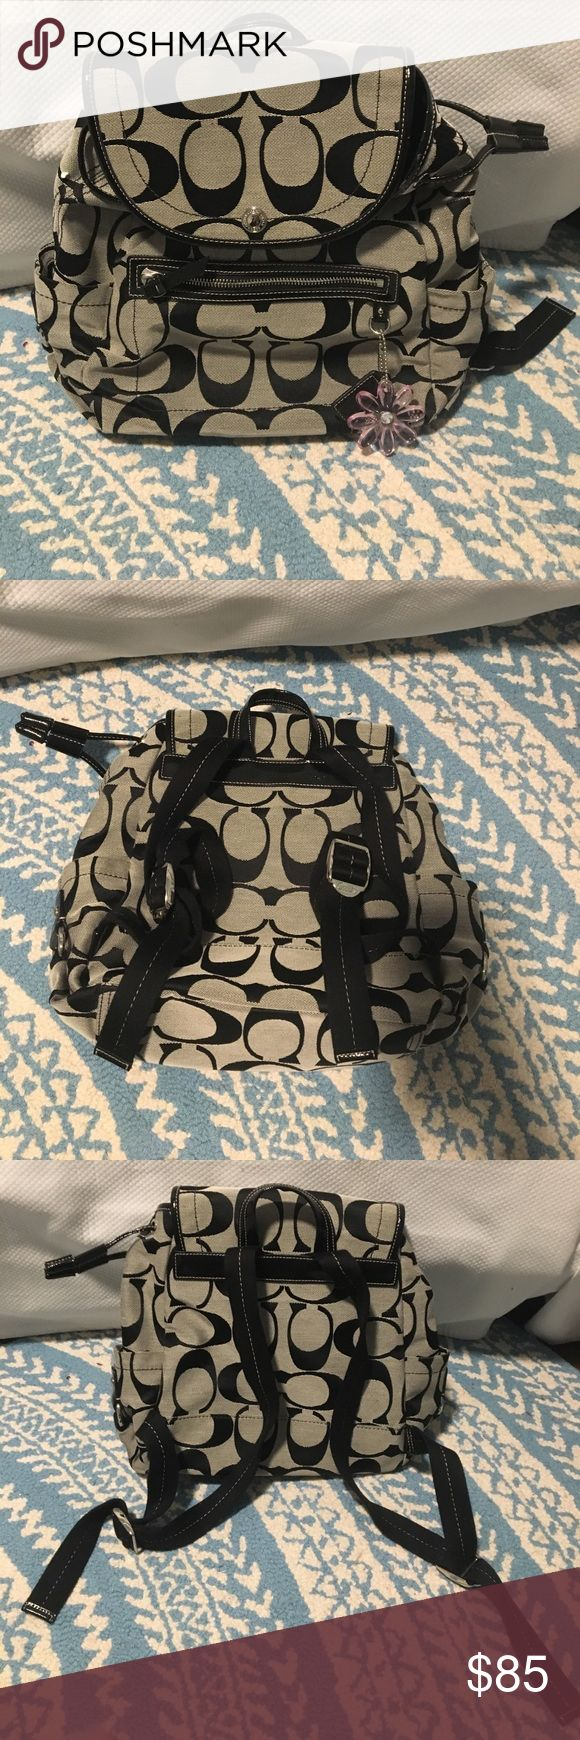 Coach Backpack NWOT Black and gray Coach backpack. Never used before - in perfect condition. About 12 inches long. Adjustable backpack straps and has a handle at the top if you don't want to wear it as a backpack. Coach flower keychain included on it and can be removed. Inside has one zipper pocket and 2 open pockets. Outside has one zipper pocket ✨ Coach Bags Backpacks